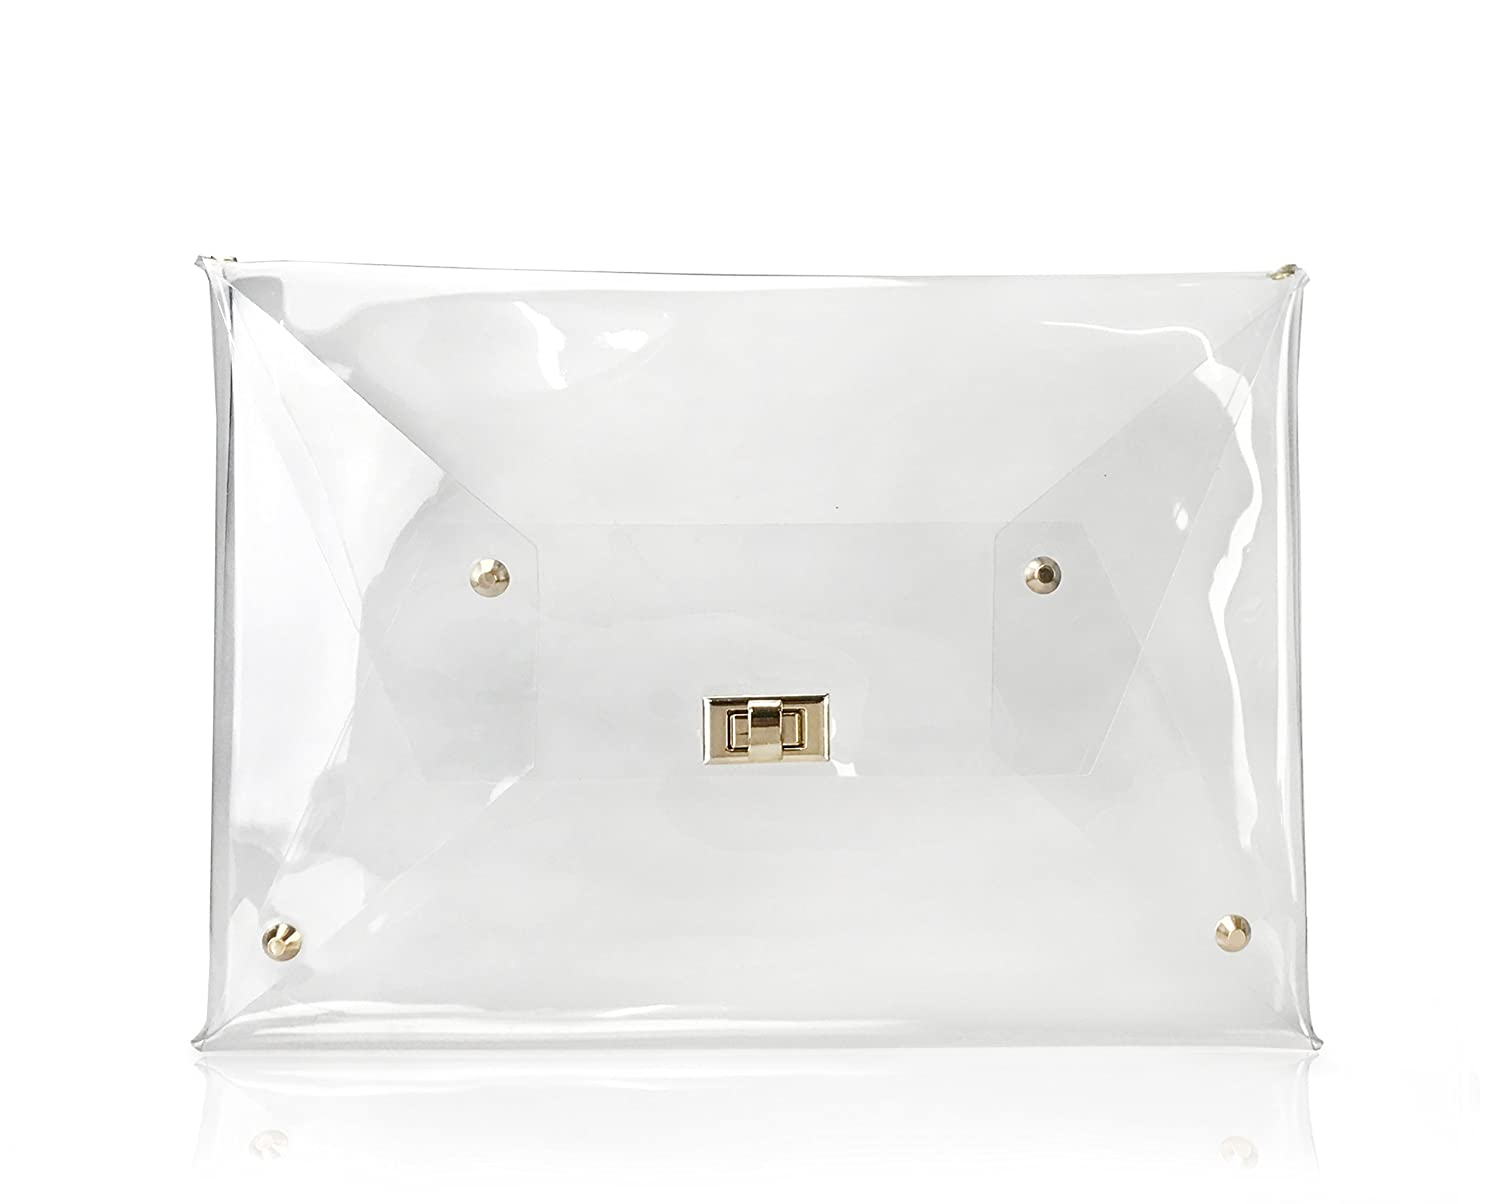 f528d61f3e8 Hoxis Large Size PVC Clear Envelope Clutch Gold Chain Crossbody Shoulder Bag  Women's Purse (Clear): Handbags: Amazon.com